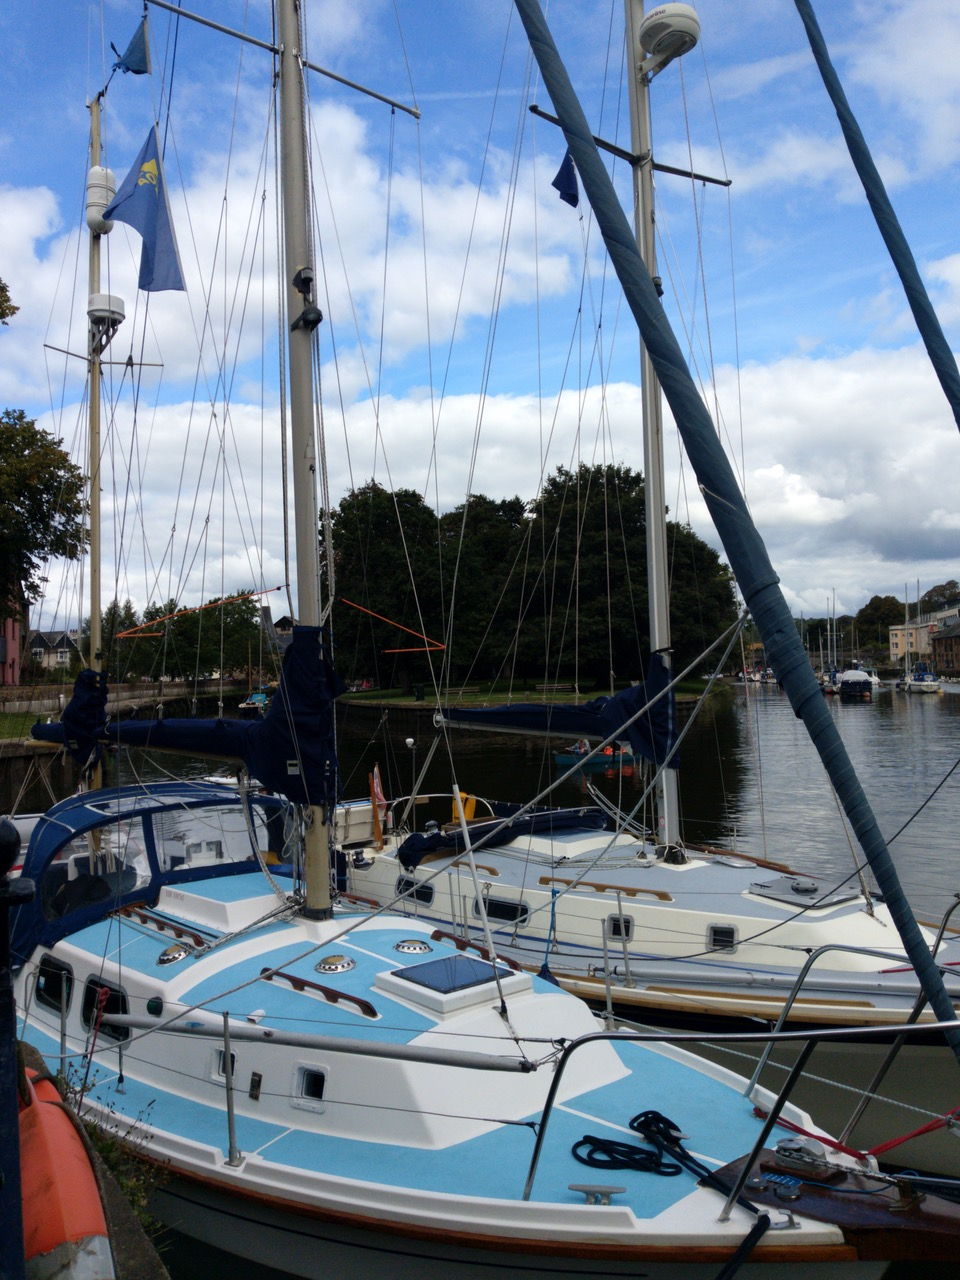 Moored at the pub